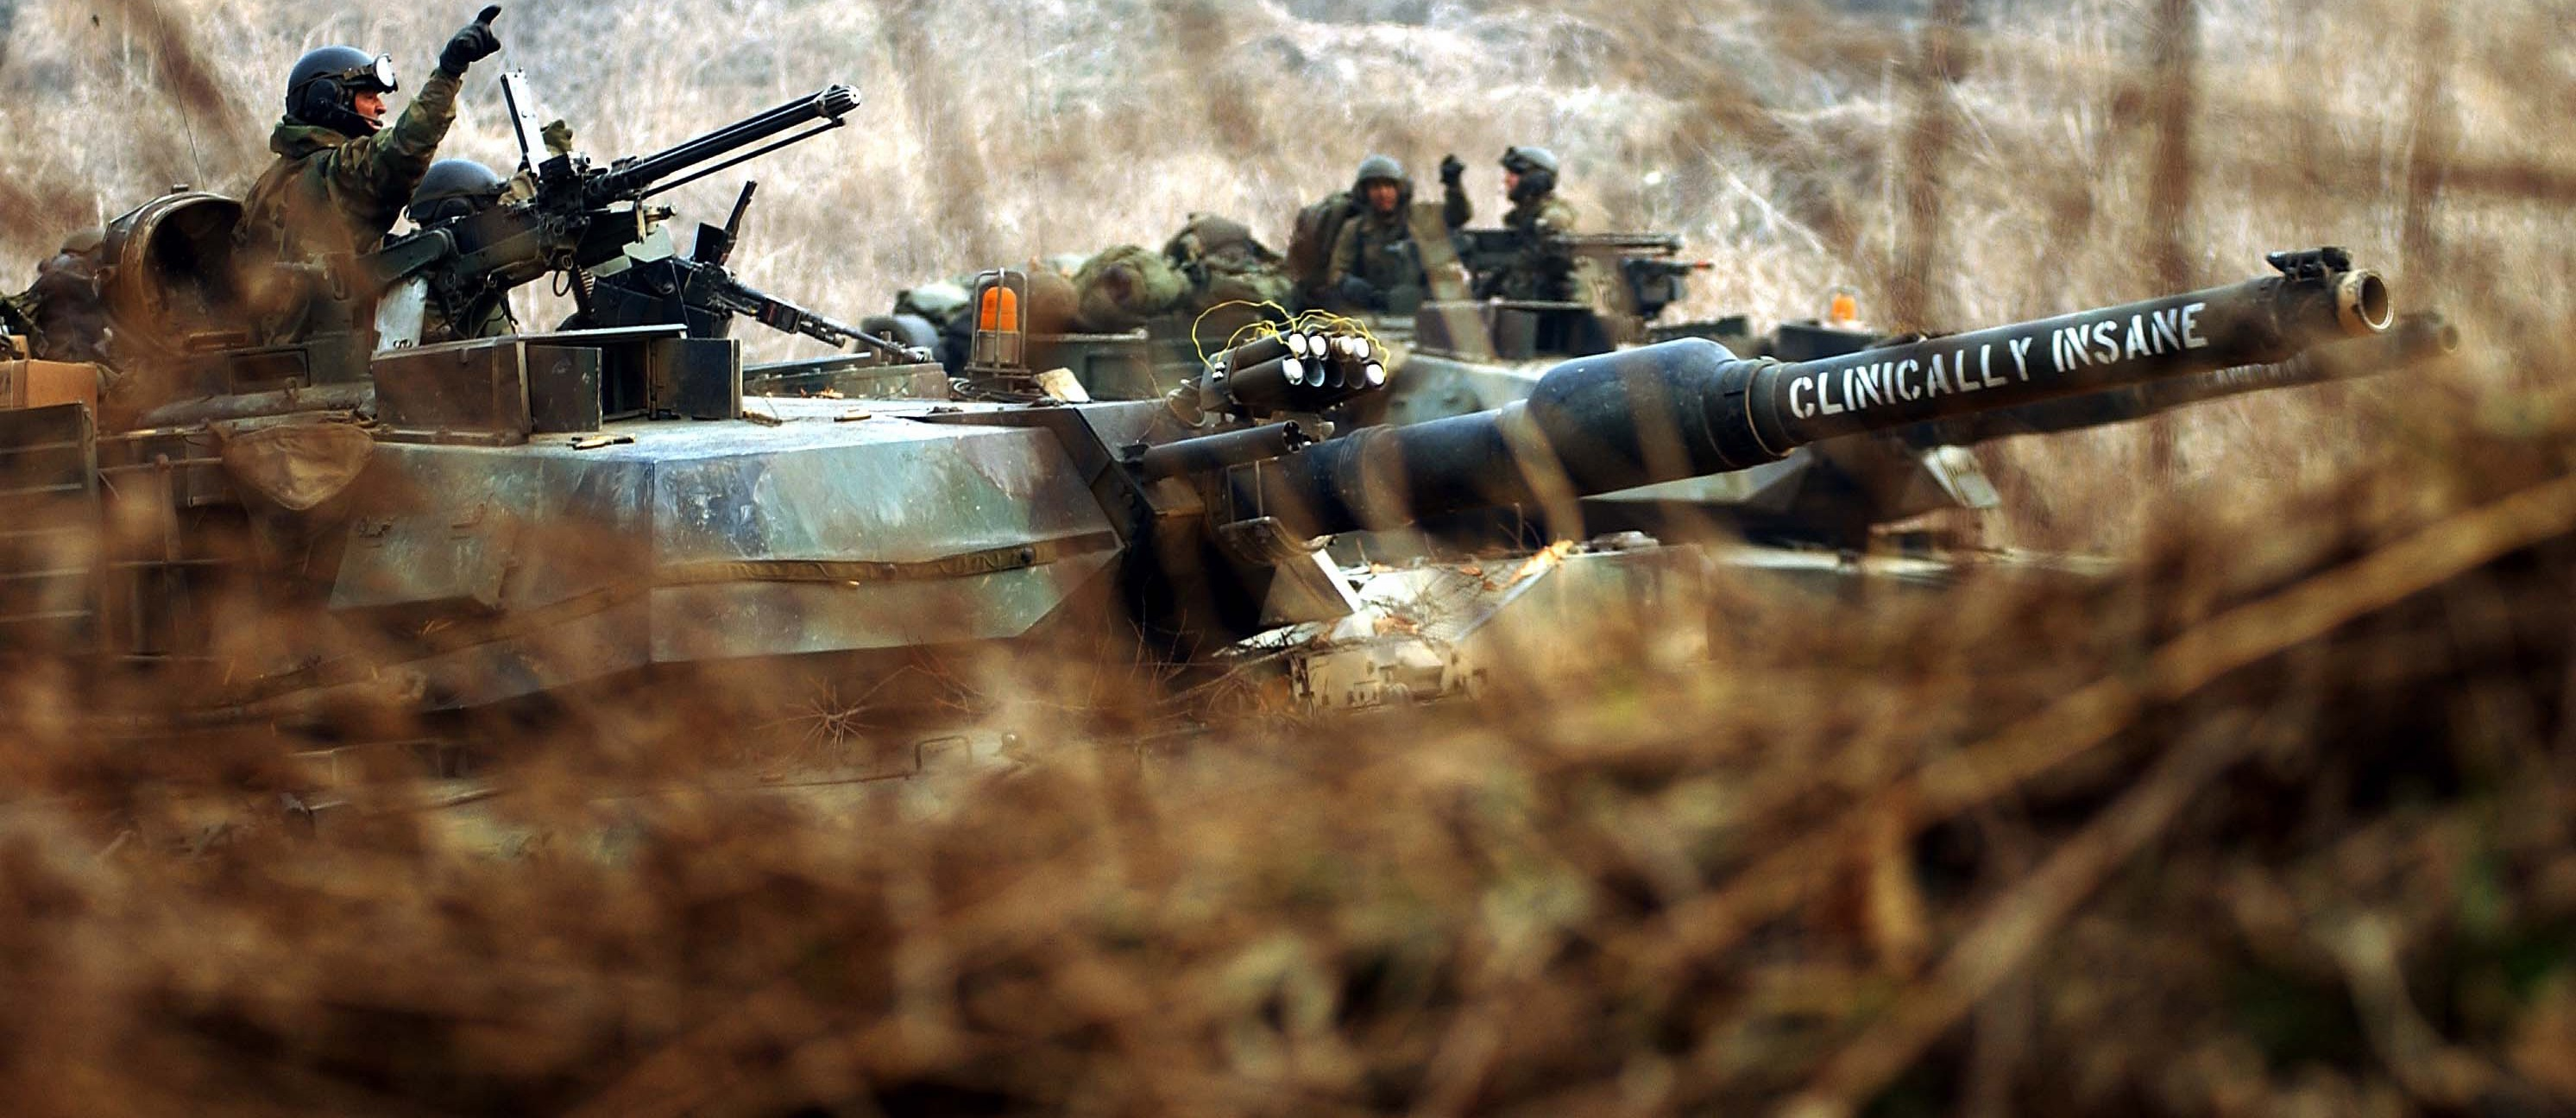 US Army tanks exercising in South Korea. (Flickr/8th US Army)